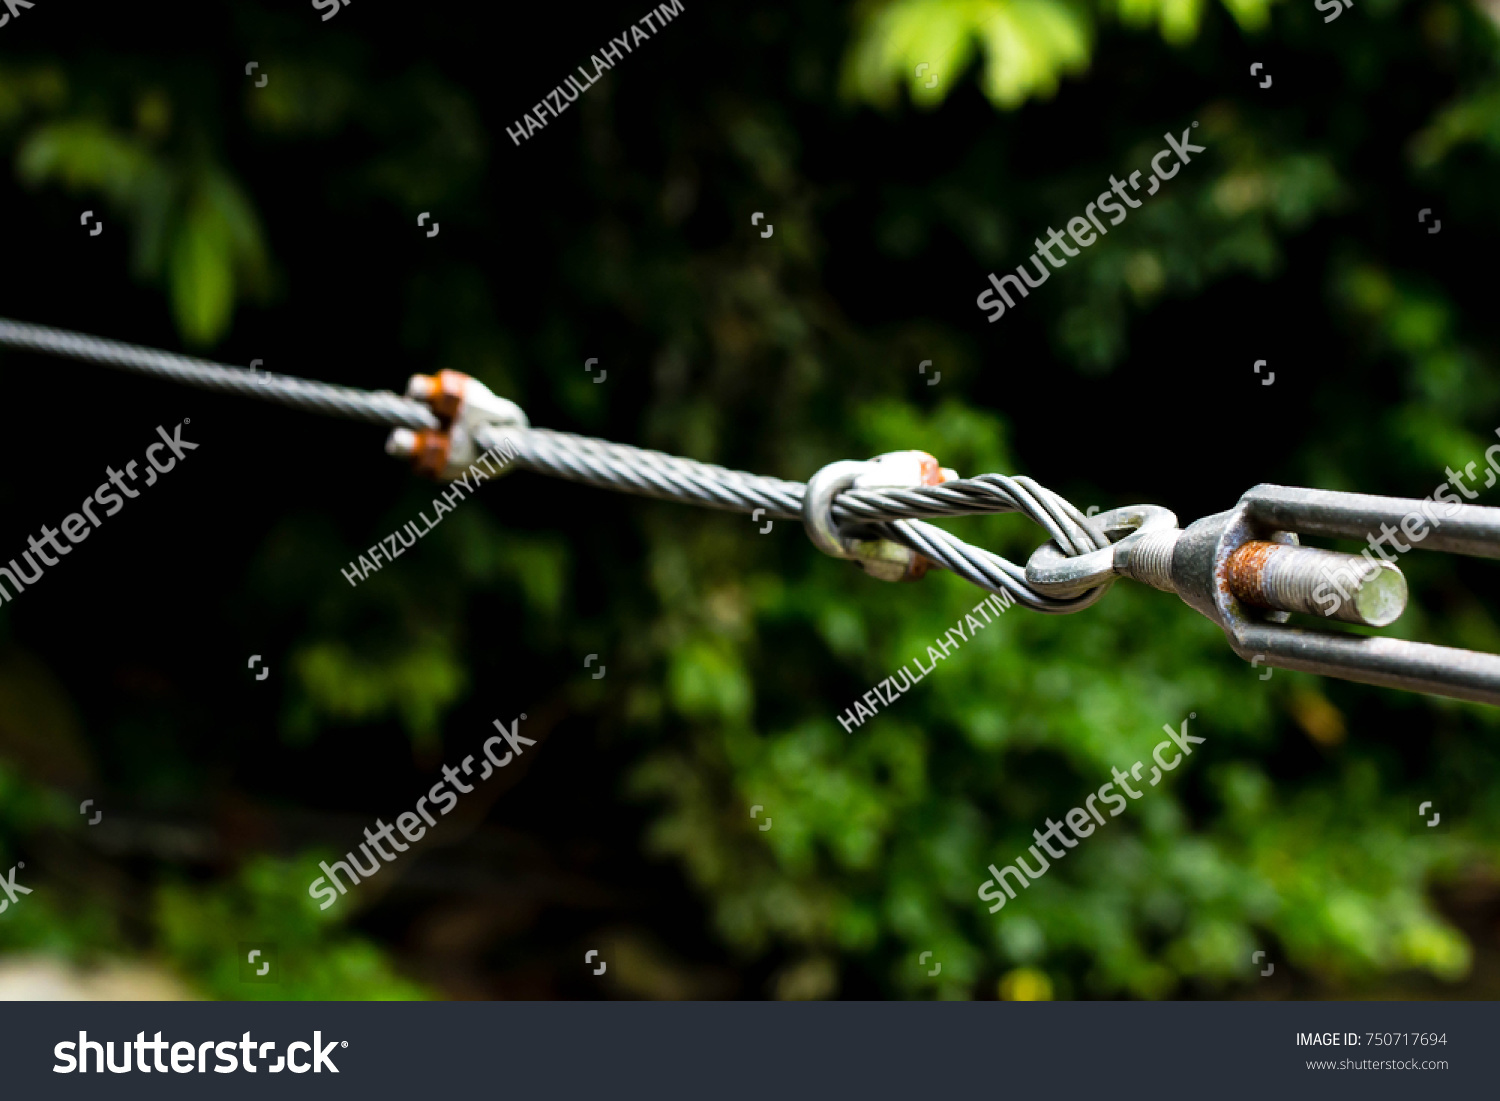 Close Heavy Duty Steel Wire Cable Stock Photo (Edit Now) 750717694 ...